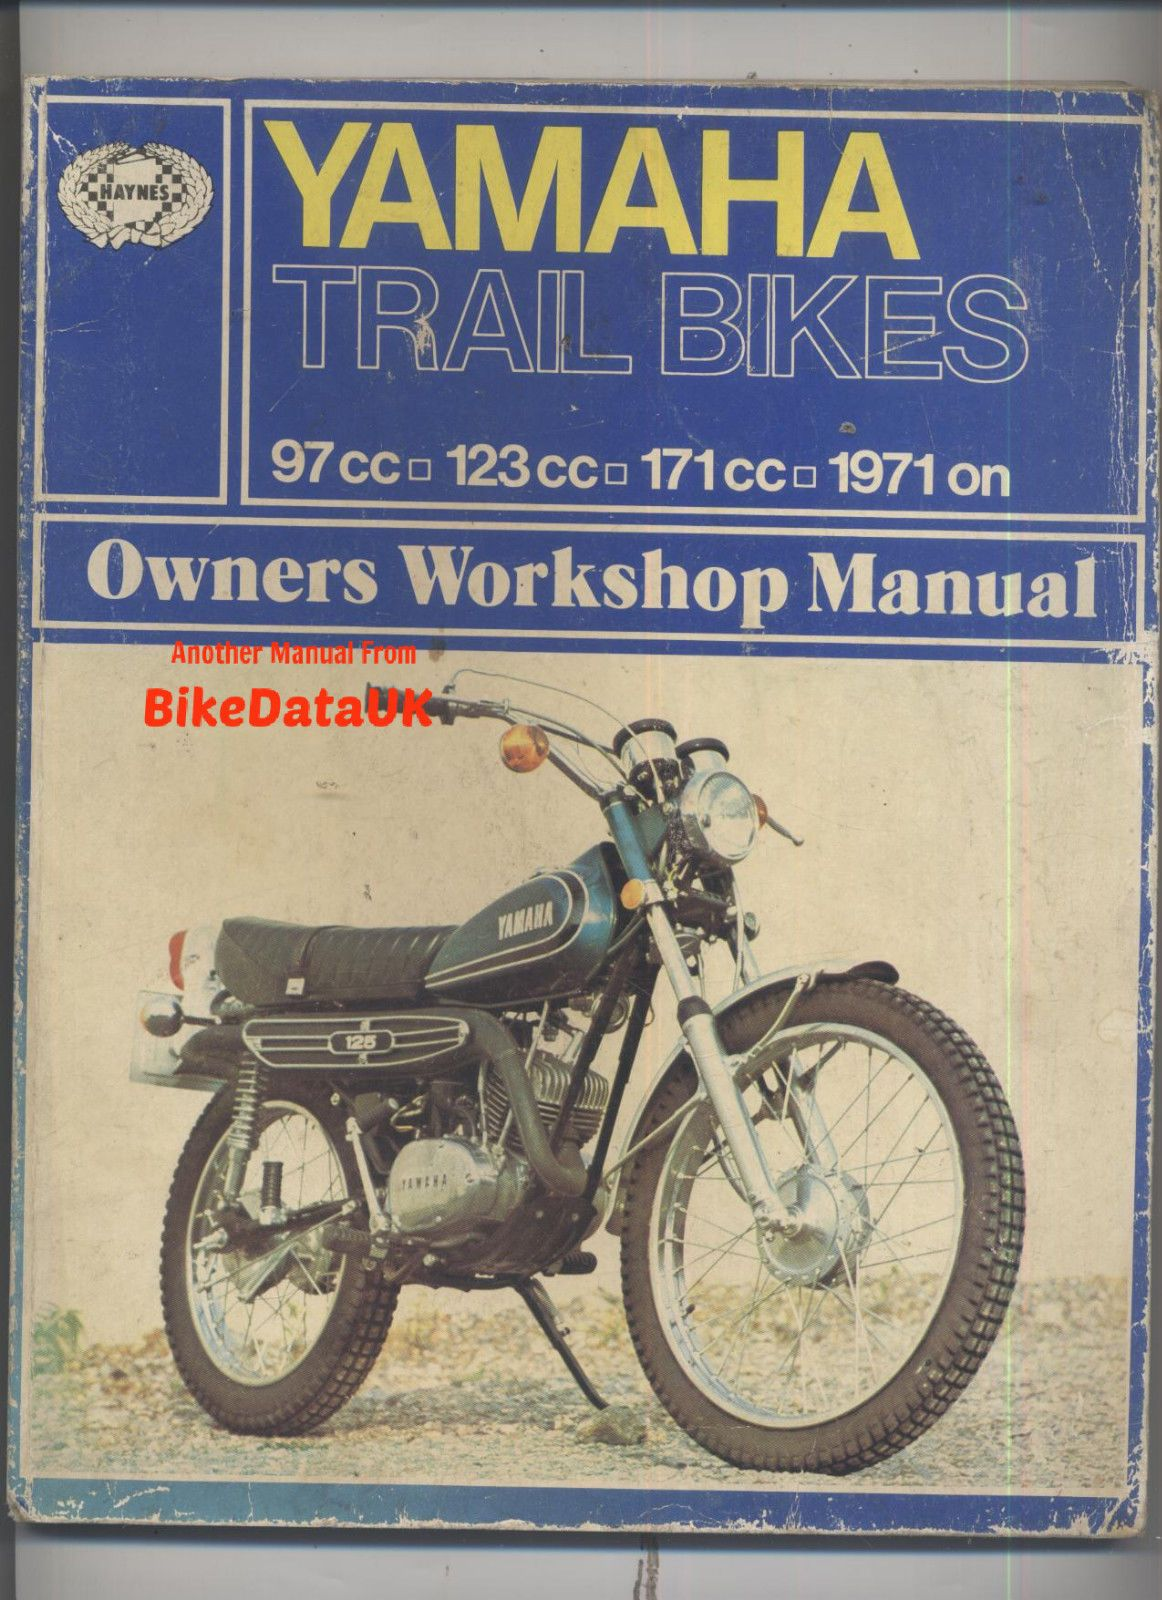 1974 Yamaha Dt175 Wiring Schematic 74 125 Dt Manual User Guide That Easy To Read Dt125 71 Haynes Lt2 At1 Ct1 175 100 Rh Pinterest Com 1972